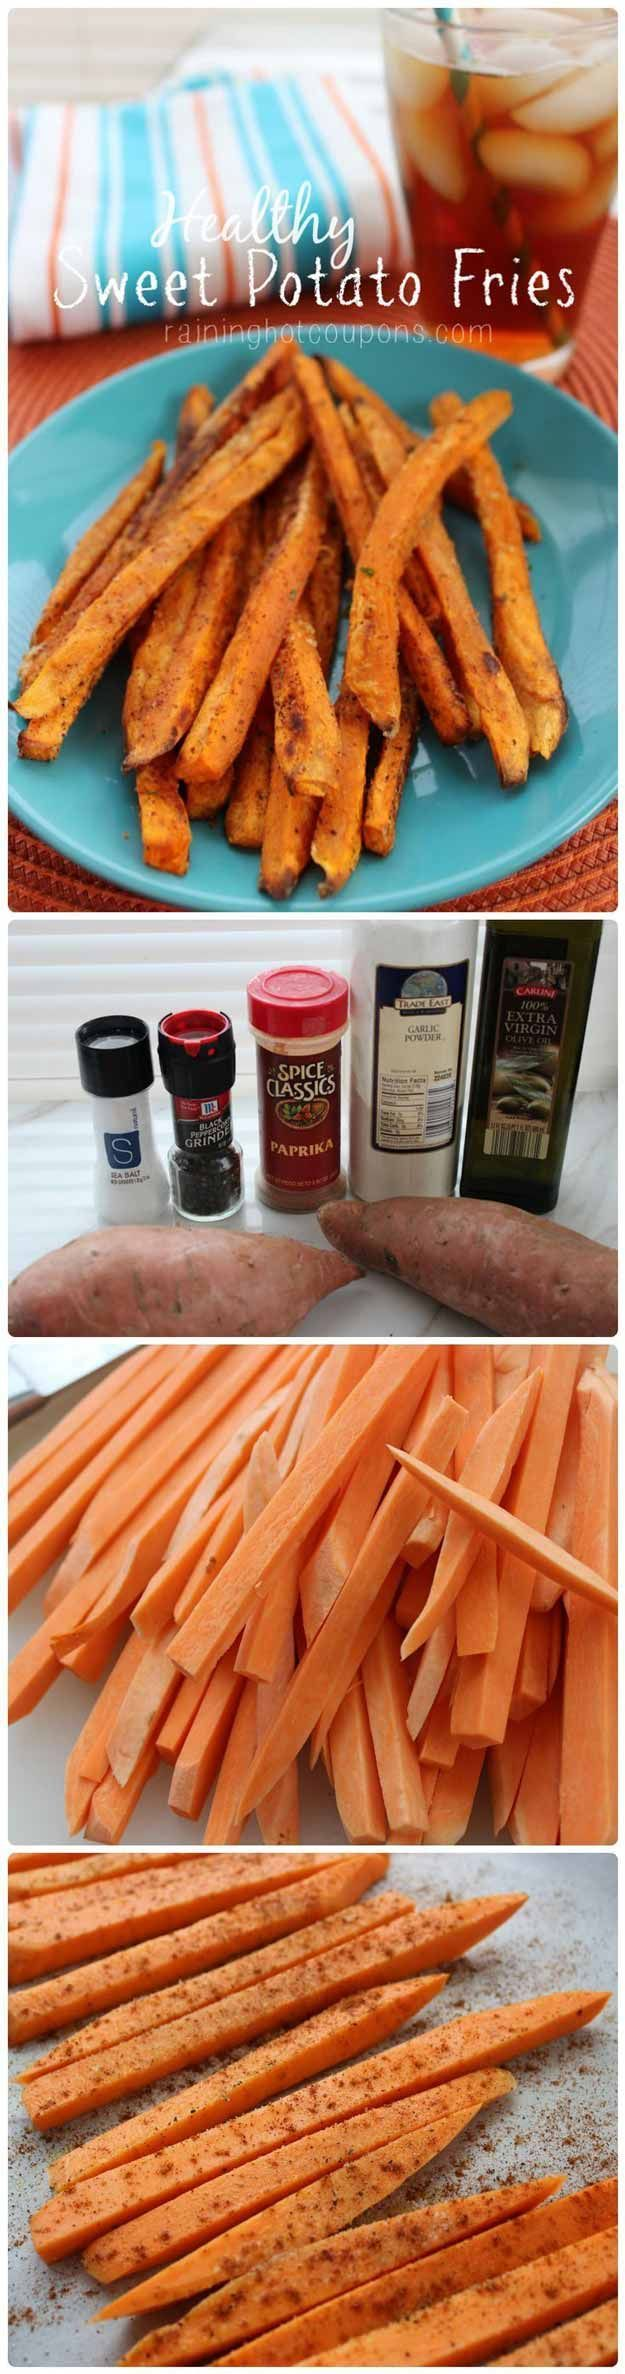 Sweet Potato Fries | Super Yummy and Healthy Homemade Recipes by Pioneer Settler at http://pioneersettler.com/sweet-potato-recipes-homesteader/